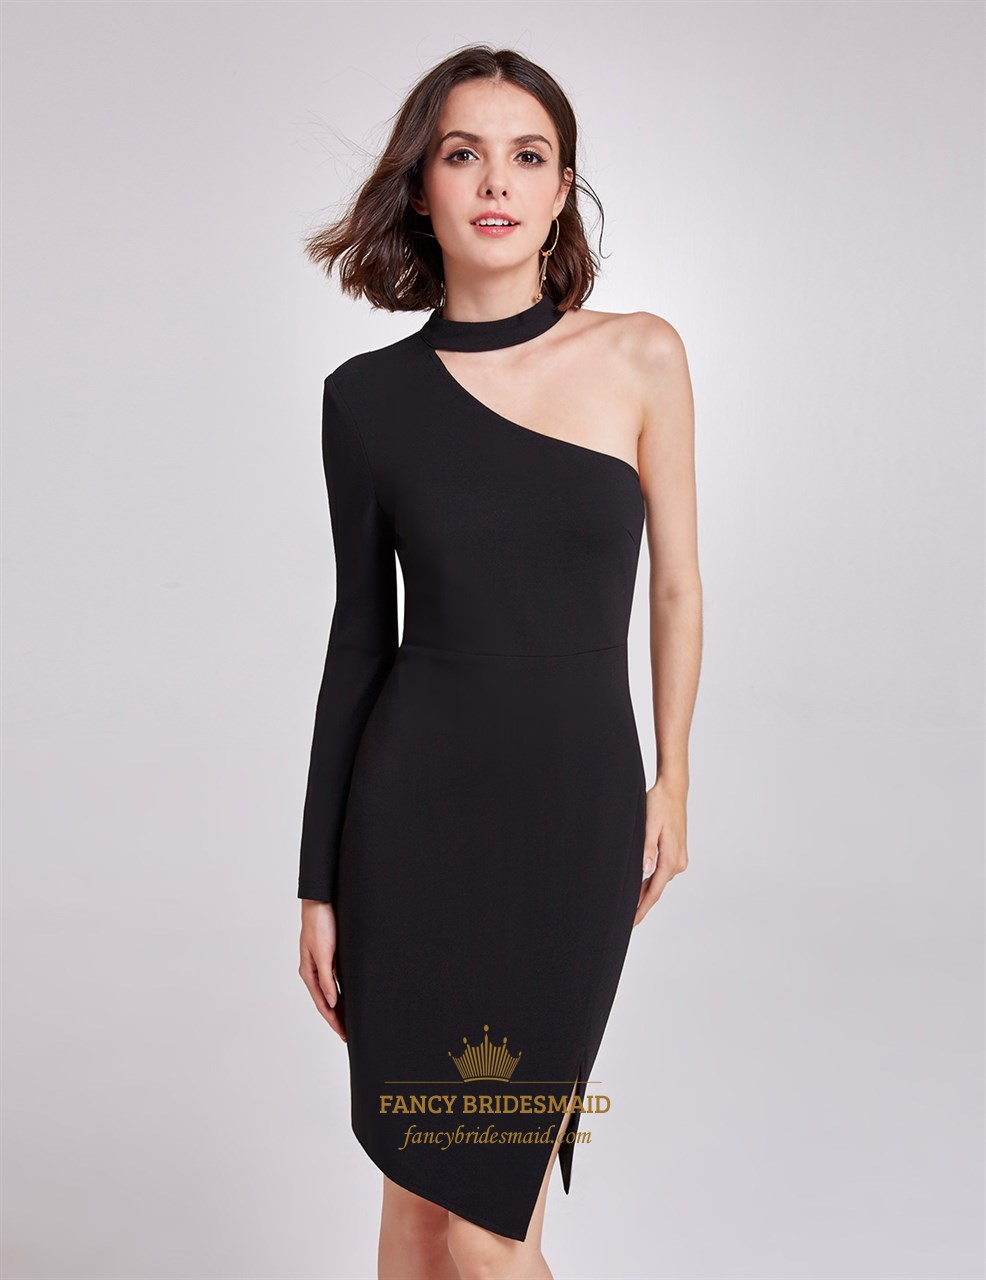 Although the original design retails for thousands of dollars, Honey Couture sells cheap bandage dresses online, meaning you can get the look for less! We've made it easy to shop Bodycon bandage dresses online, with worldwide shipping available.